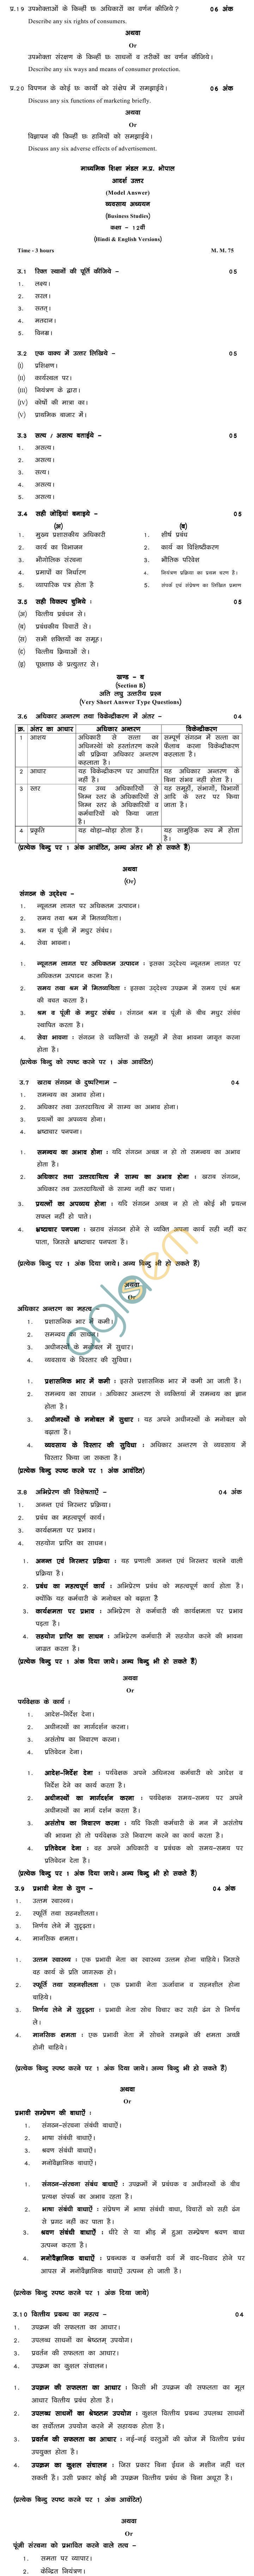 MP Board Class XII Business Studies Model Questions & Answers - Set 3